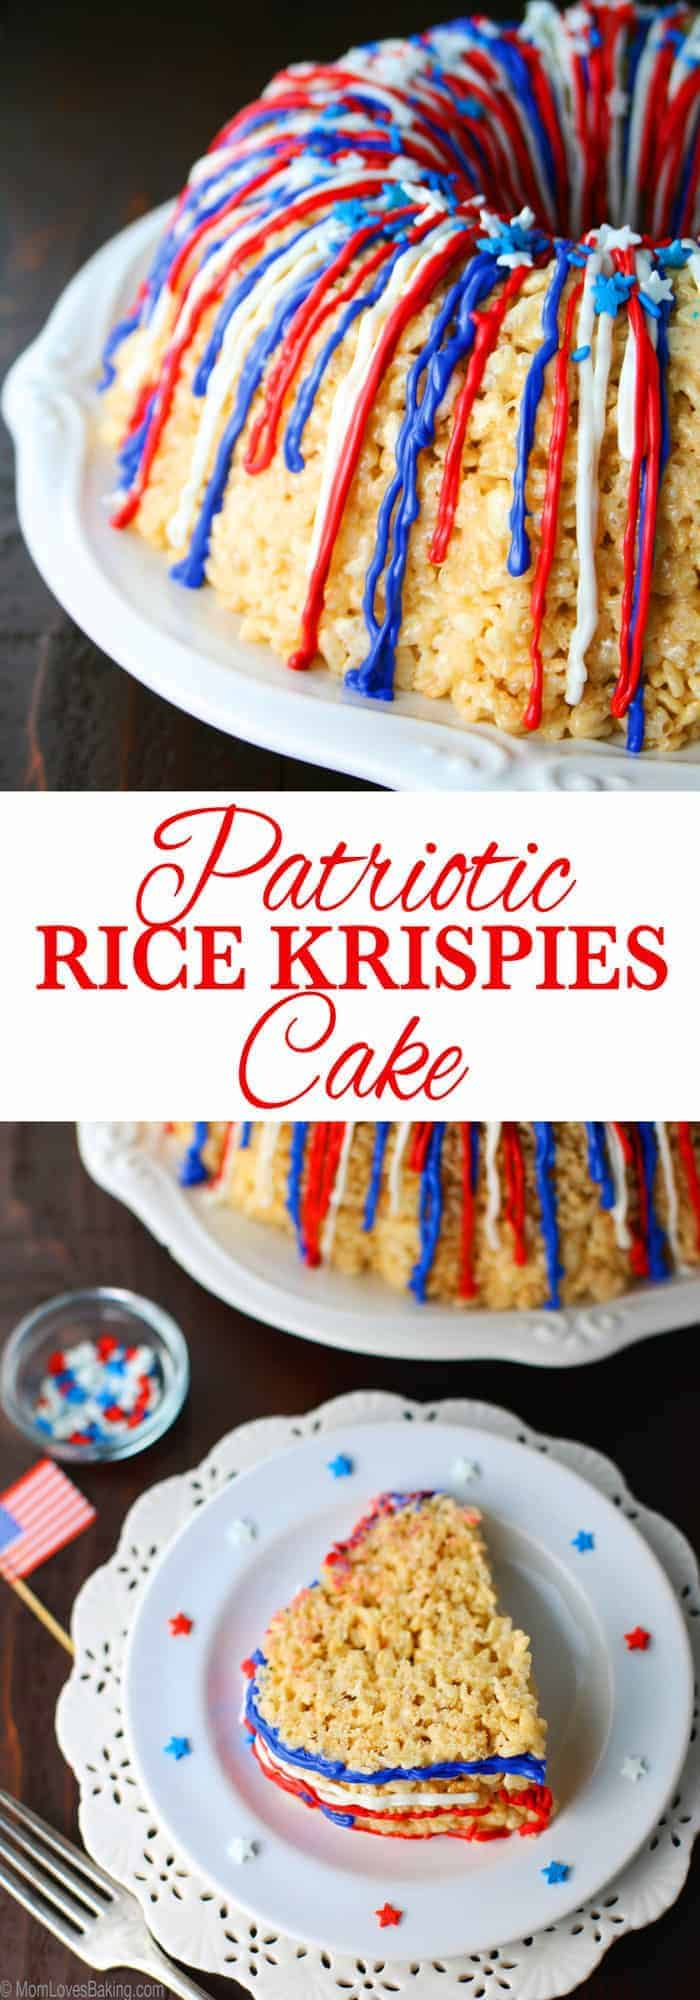 Patriotic Rice Krispies Cake